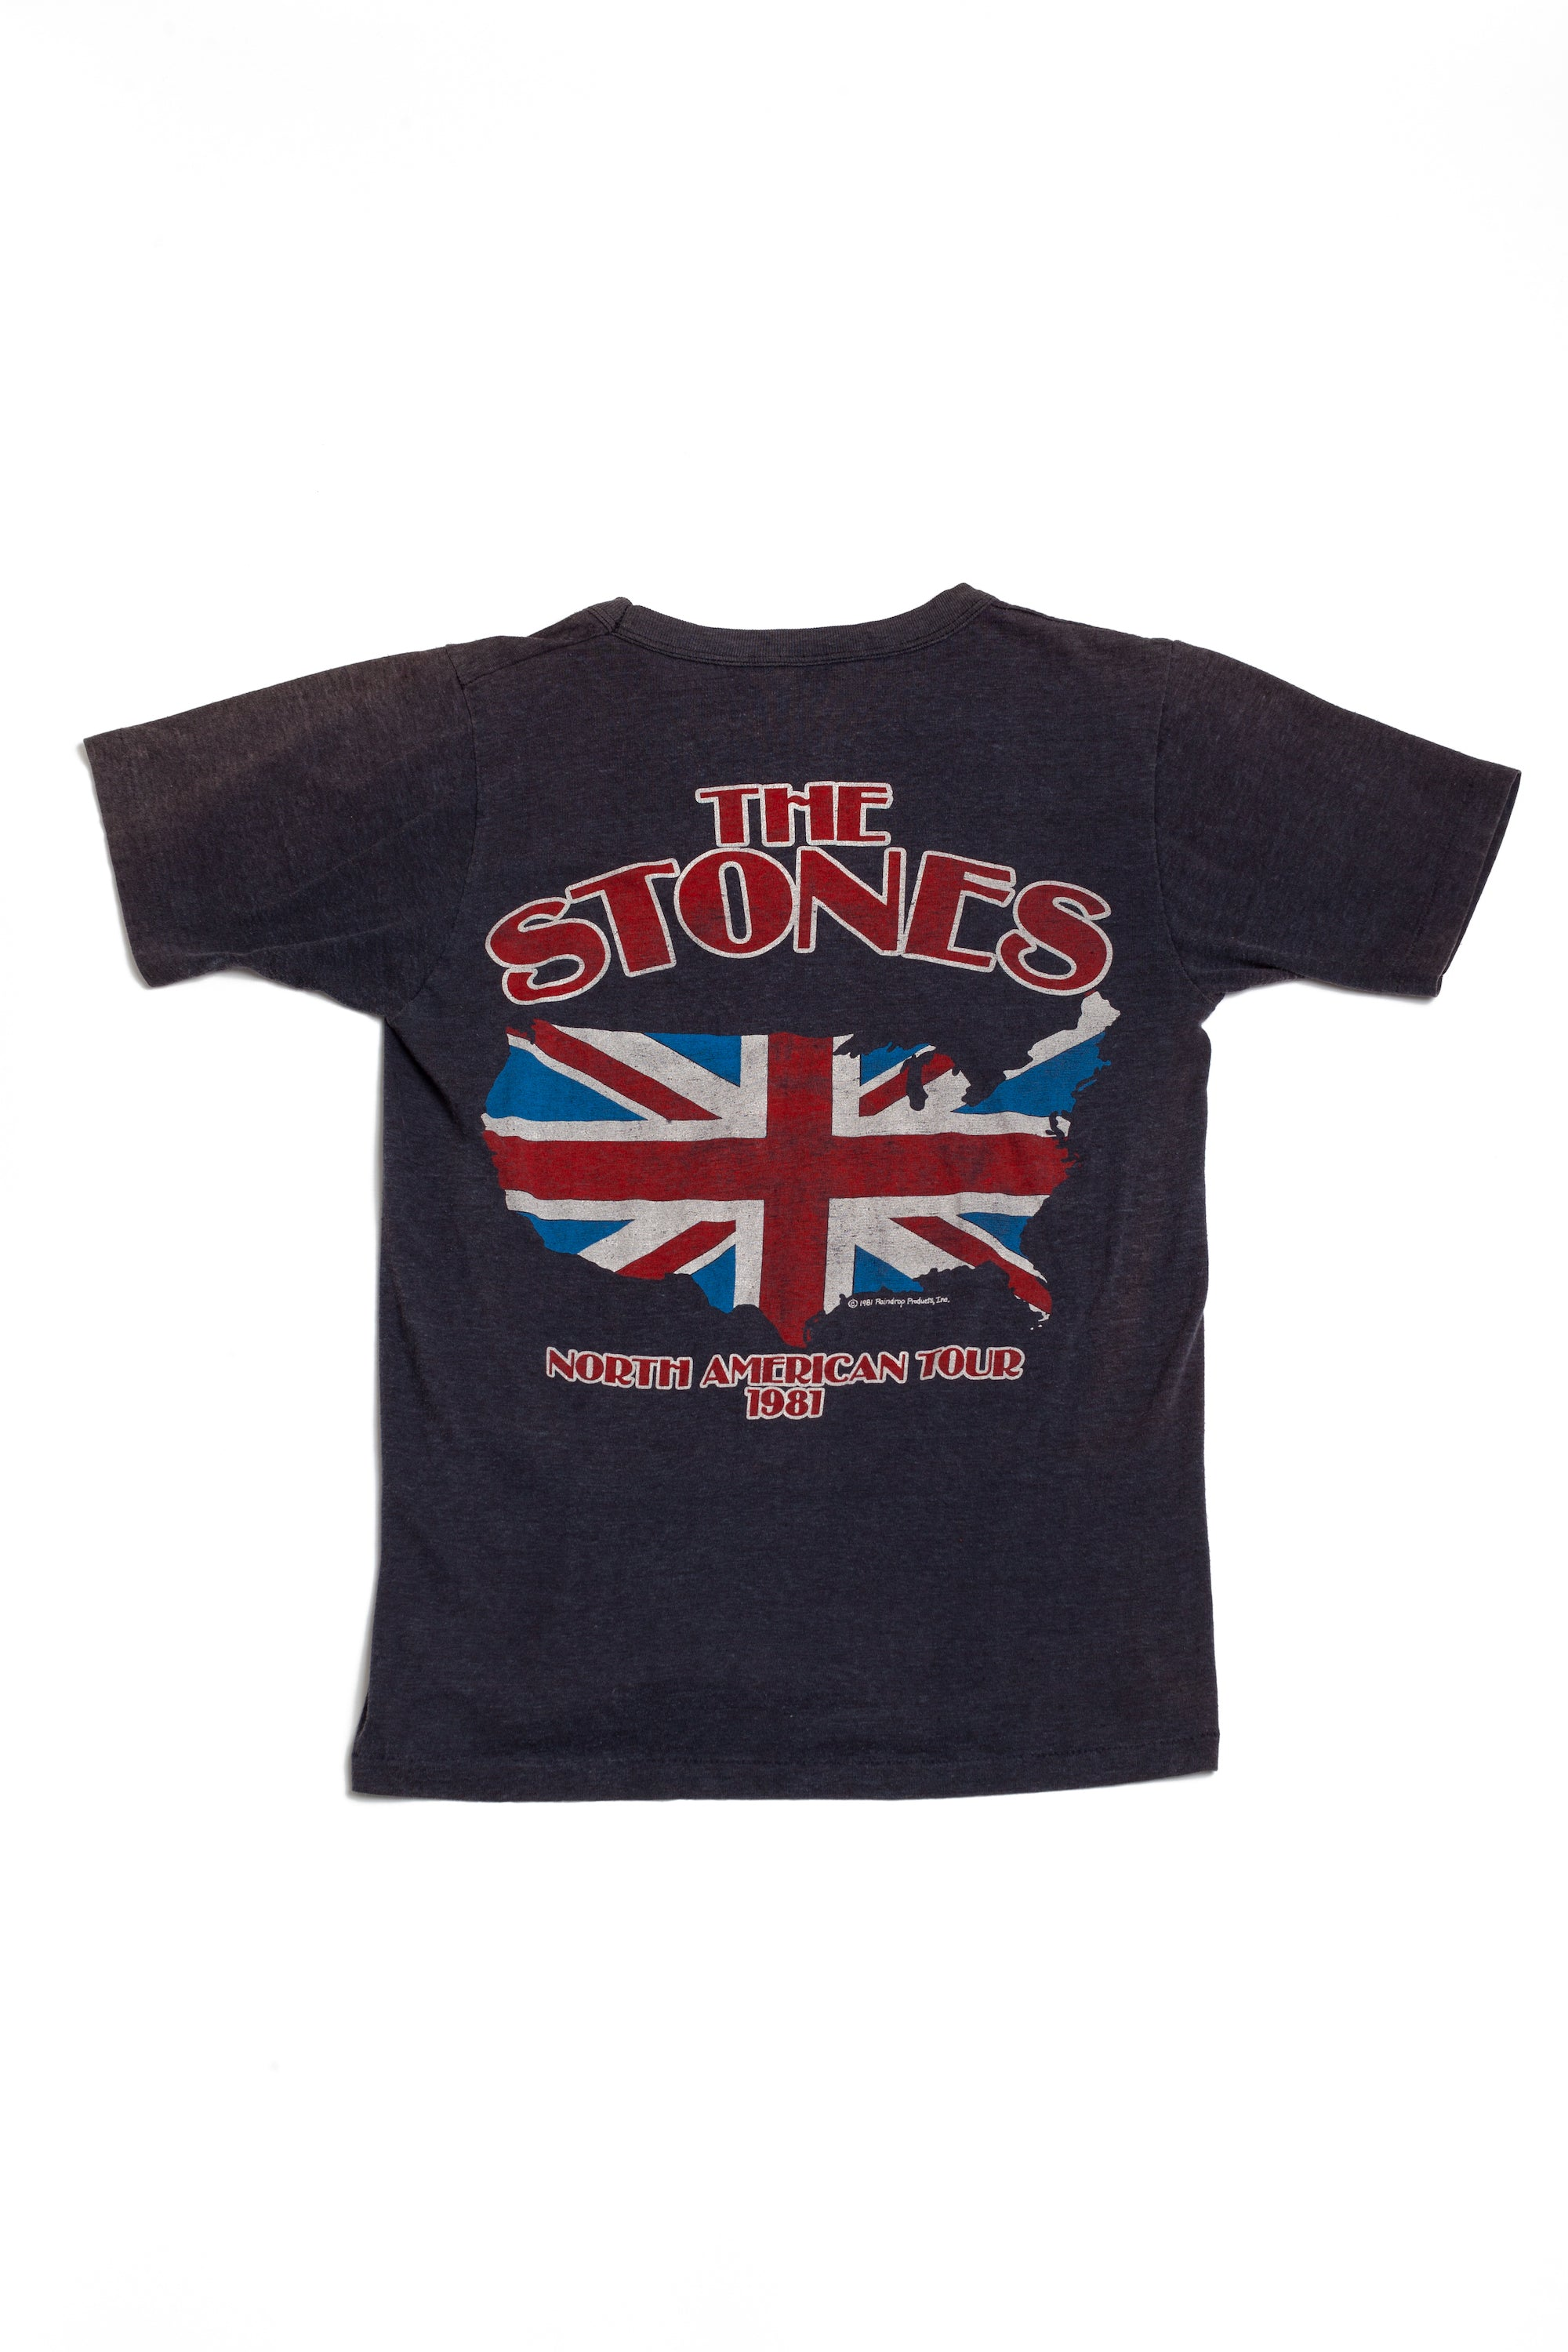 Vintage <br> 1981 The Rolling Stones tour t-shirt